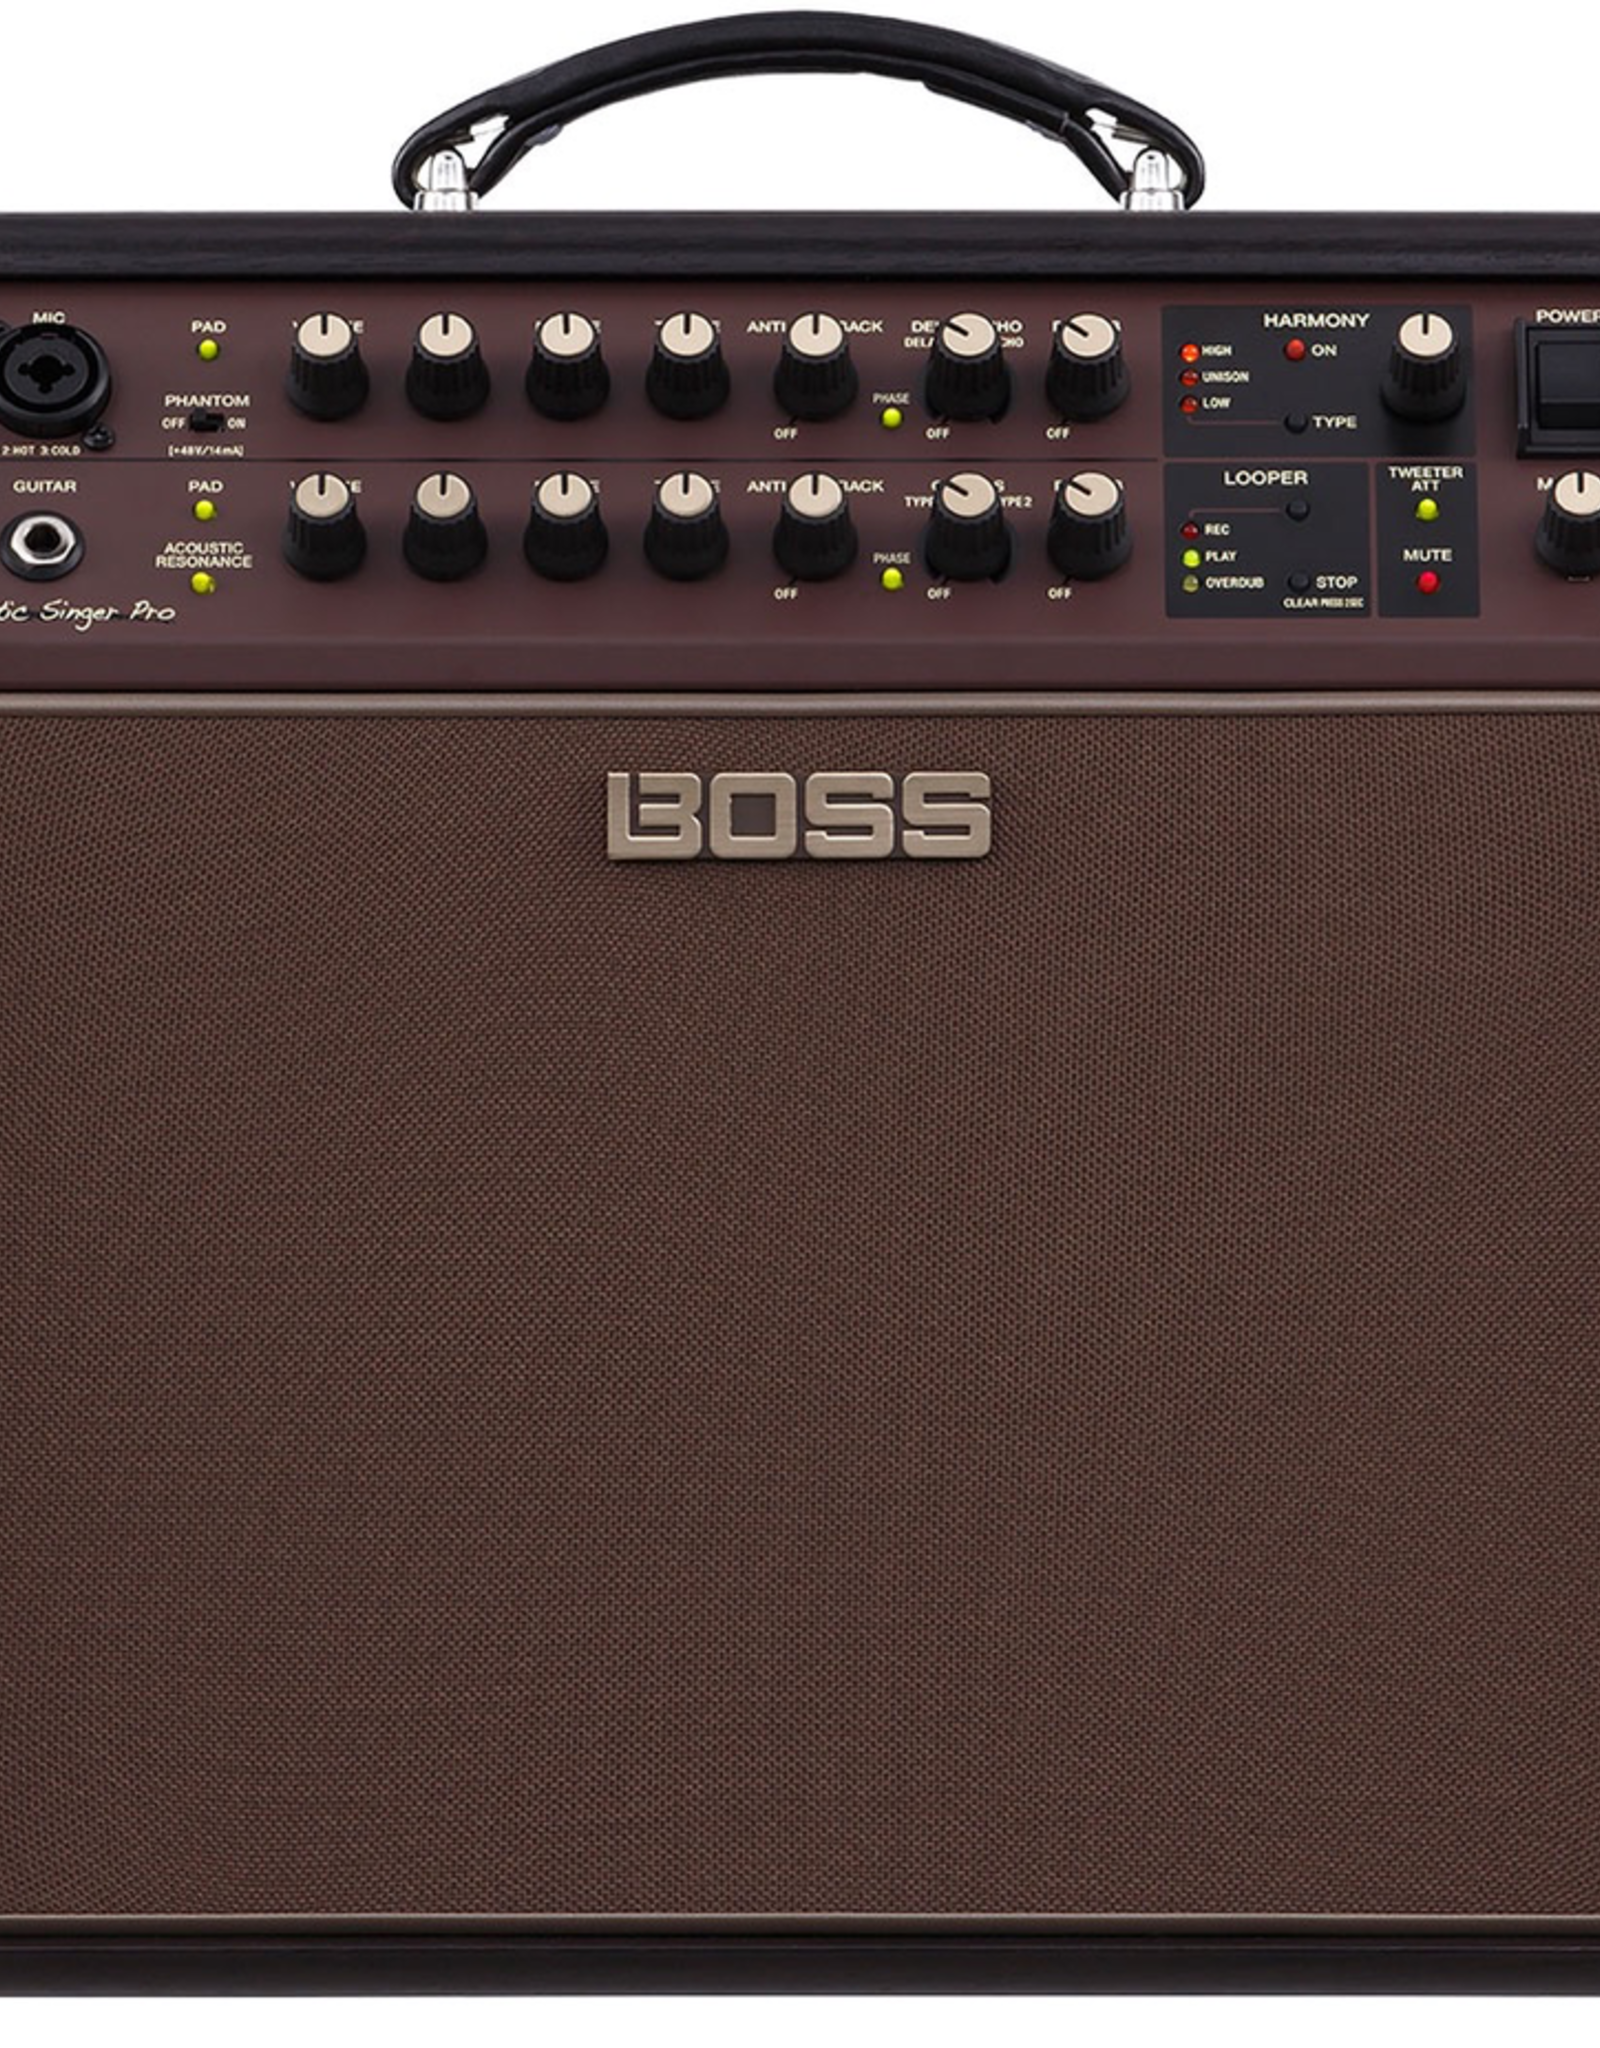 Boss BOSS Acoustic Singer Pro 120-watt Bi-amp Acoustic Combo with FX